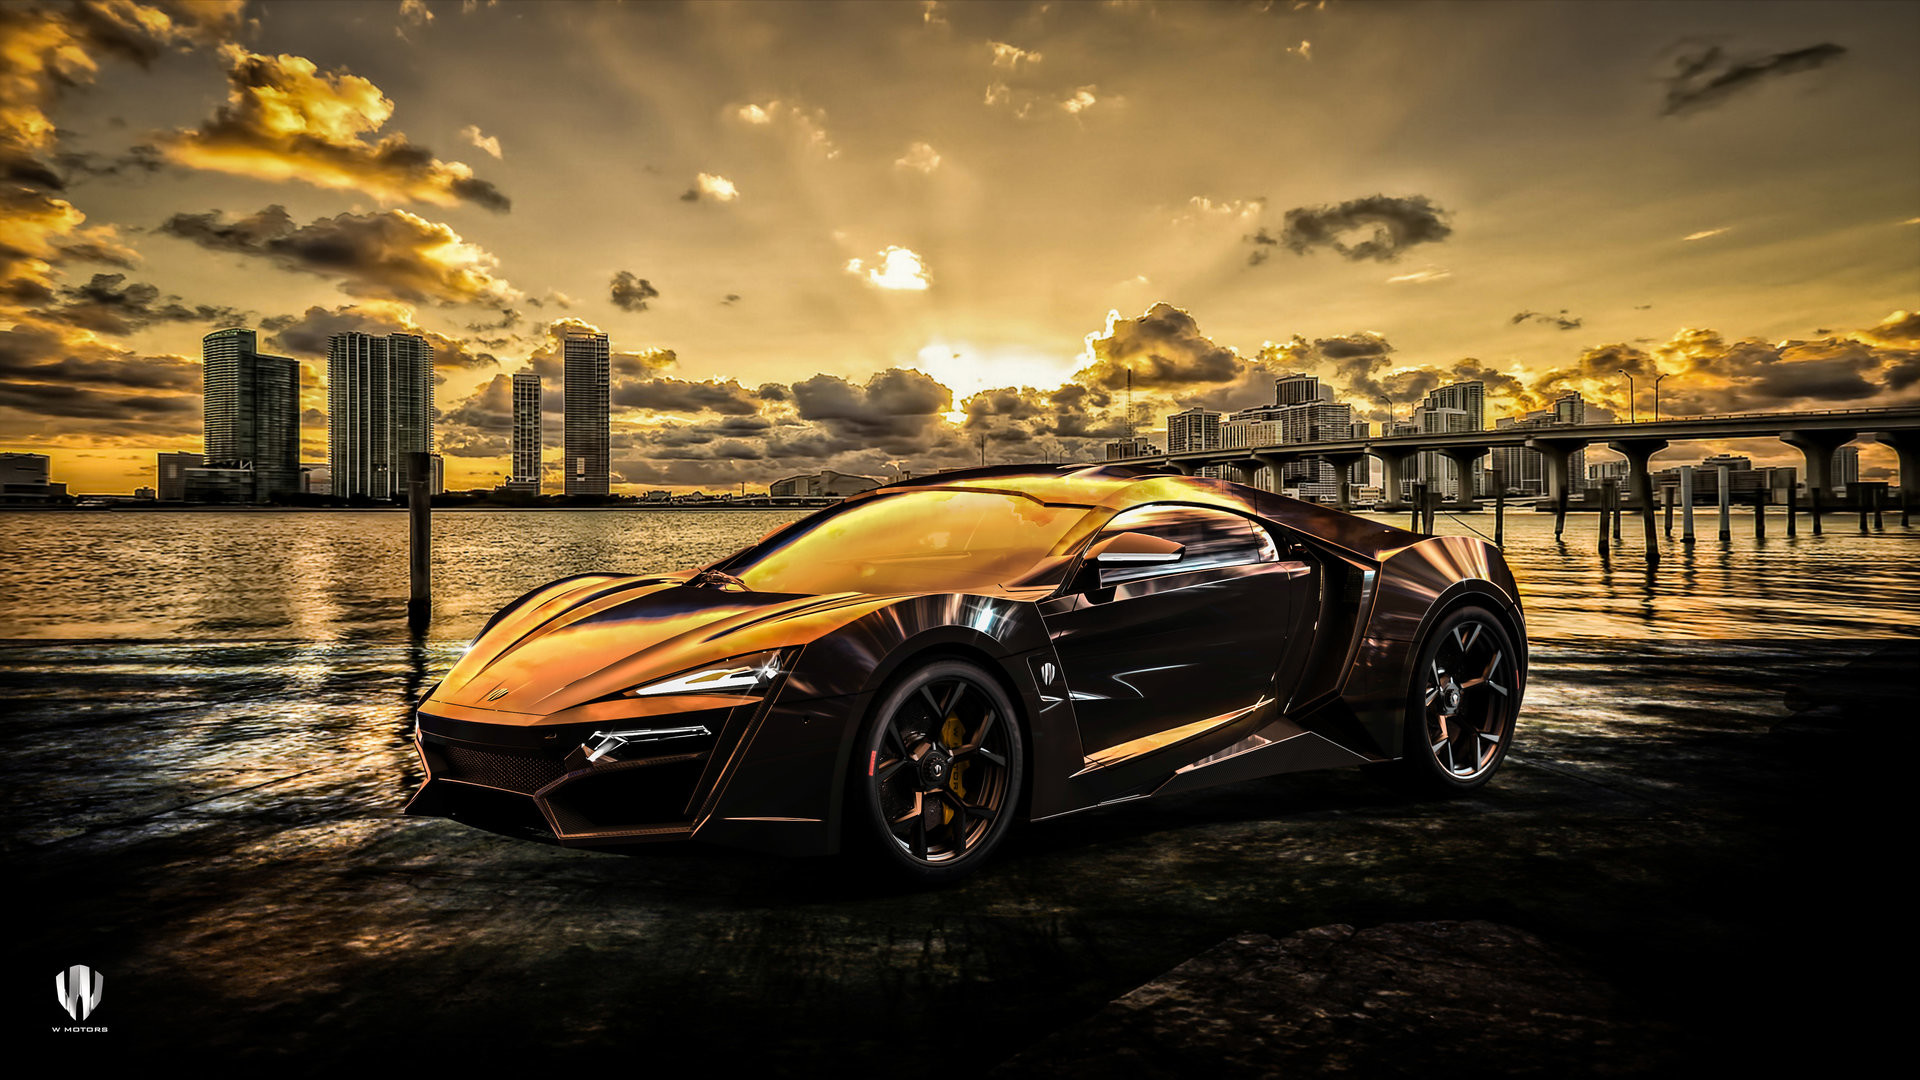 Lykan hypersport wallpapers 66 images - Lykan hypersport wallpaper 1920x1080 ...